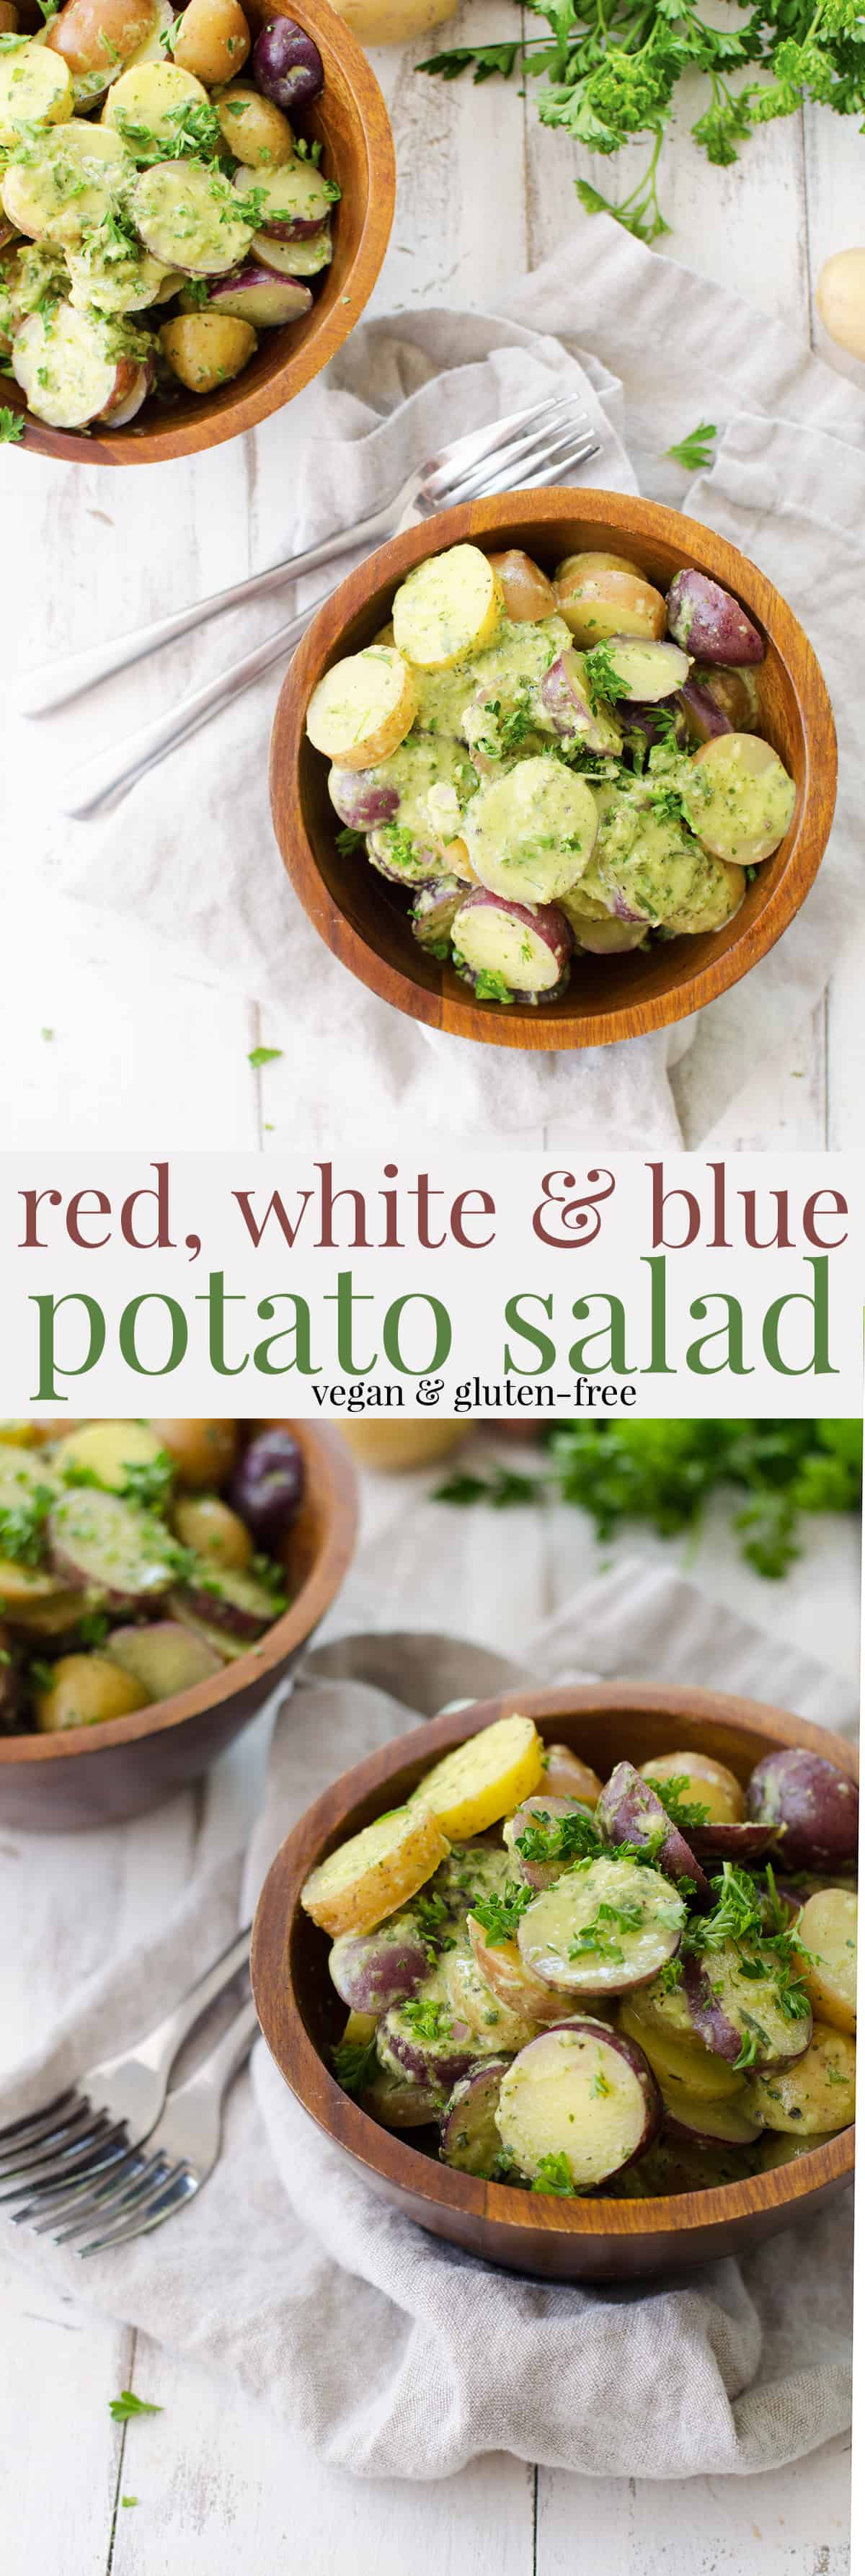 Red, White and Blue Potato Salad! Ready in just 15 minutes! Vegan and Gluten-Free. Little creamer potatoes tossed in a tangy herb dressing. Perfect for summer BBQs, Picnics and Cookouts! | www.delishknowledge.com